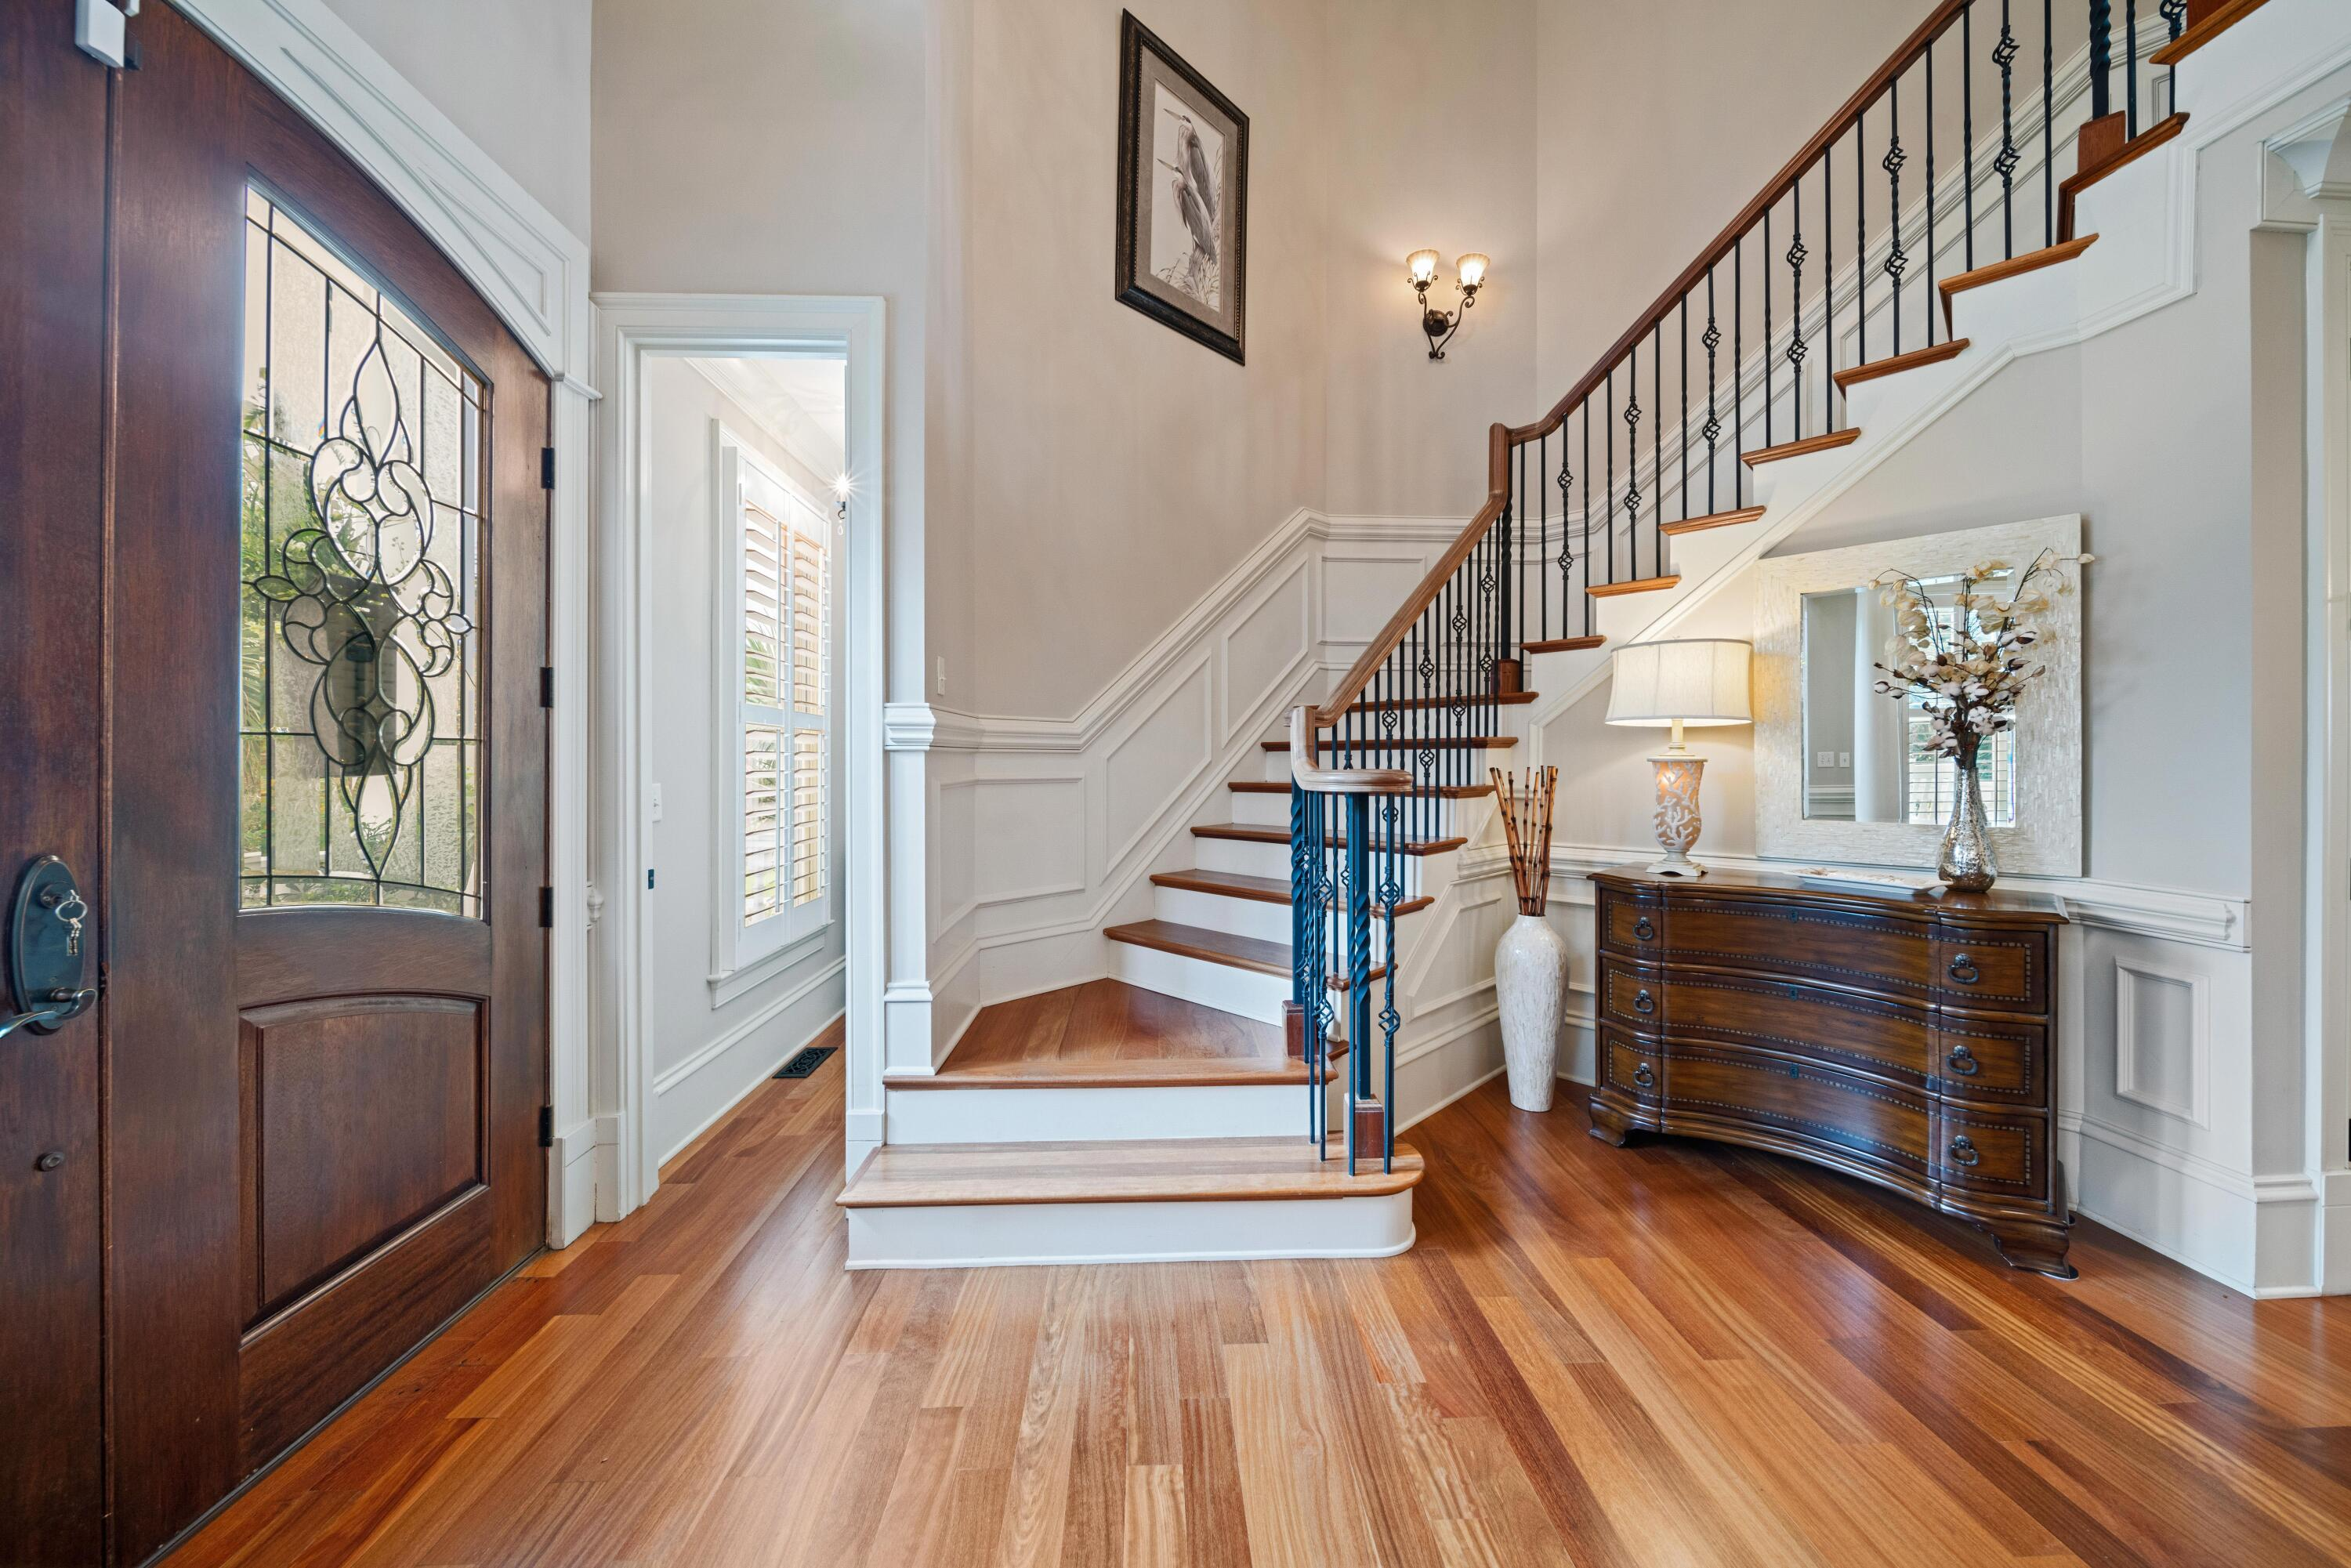 Rivertowne Country Club Homes For Sale - 1652 Rivertowne Country Club, Mount Pleasant, SC - 63